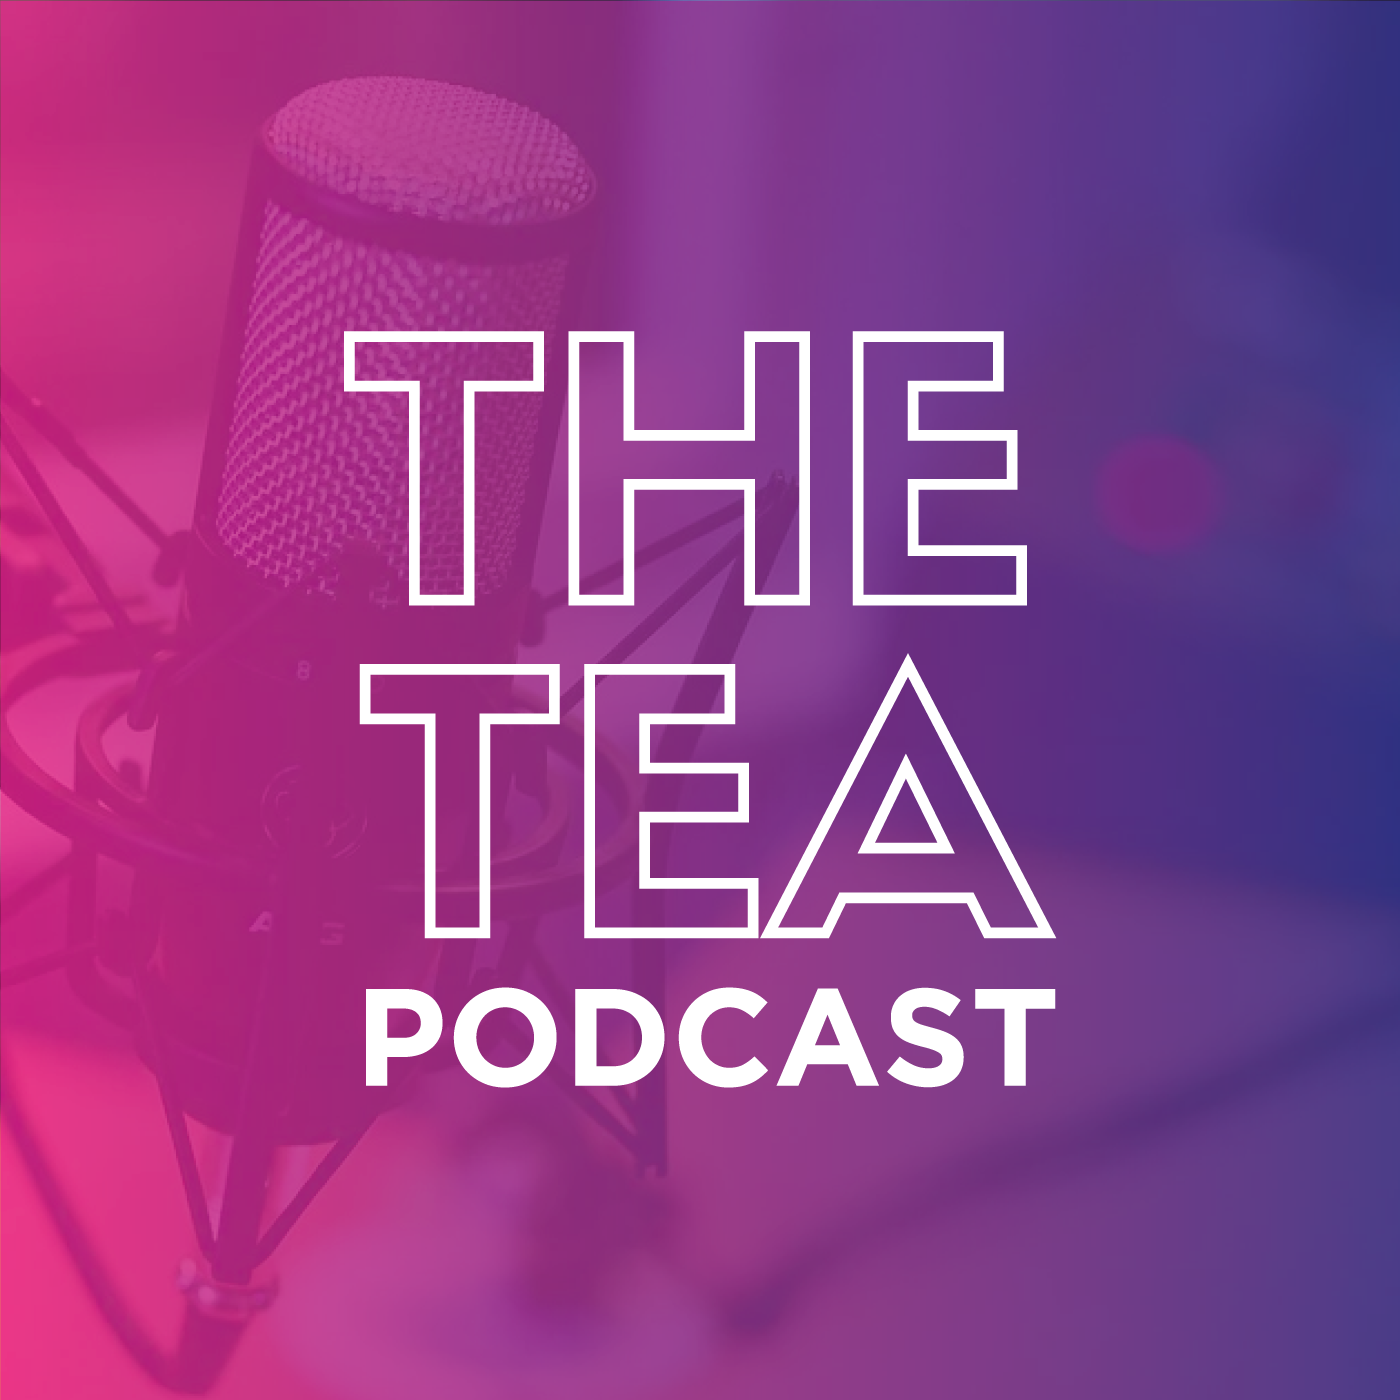 The Tea Podcast